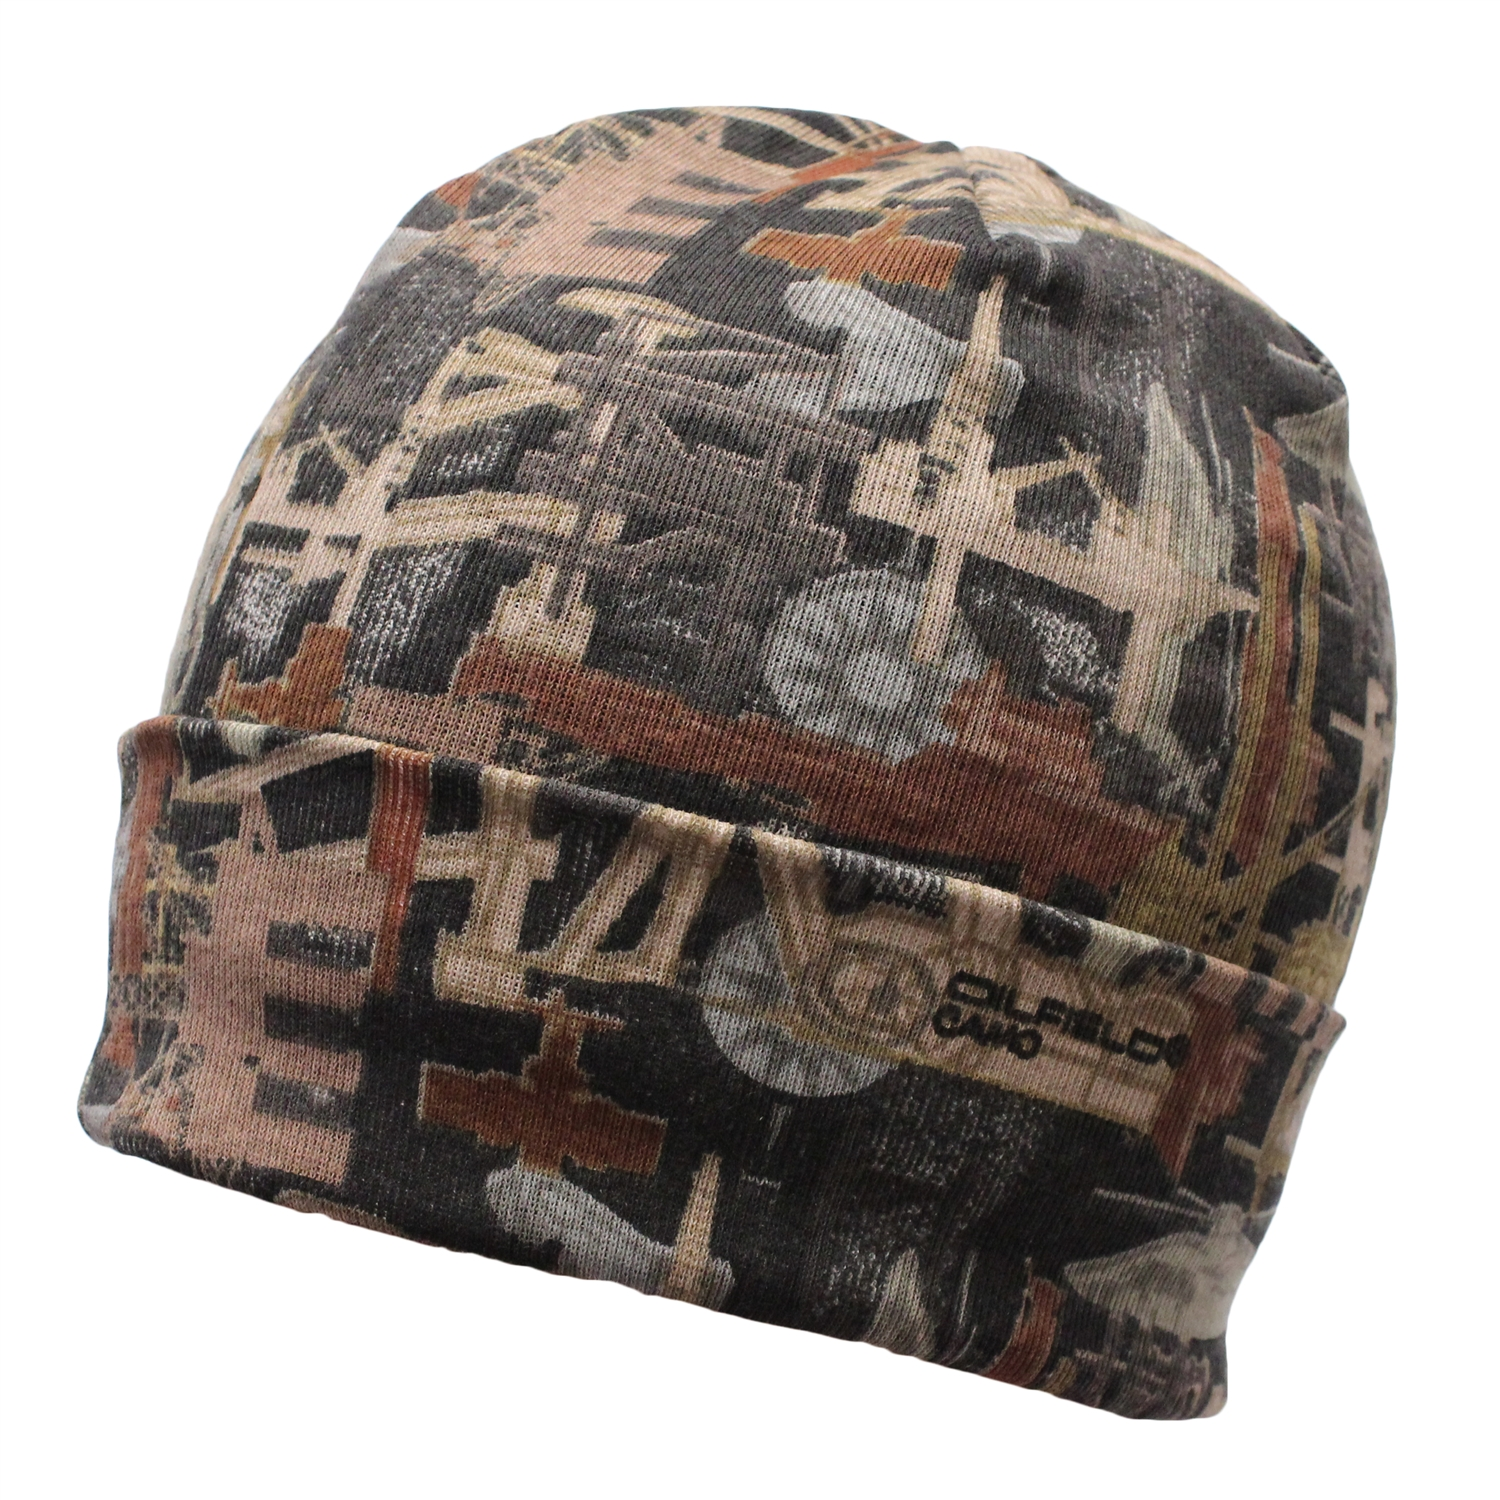 Oilfield Camo 12 Inch Cotton Twill Beanie LCB12  11.99 In stock Eligible  for free shipping ... 46c37fd5e85